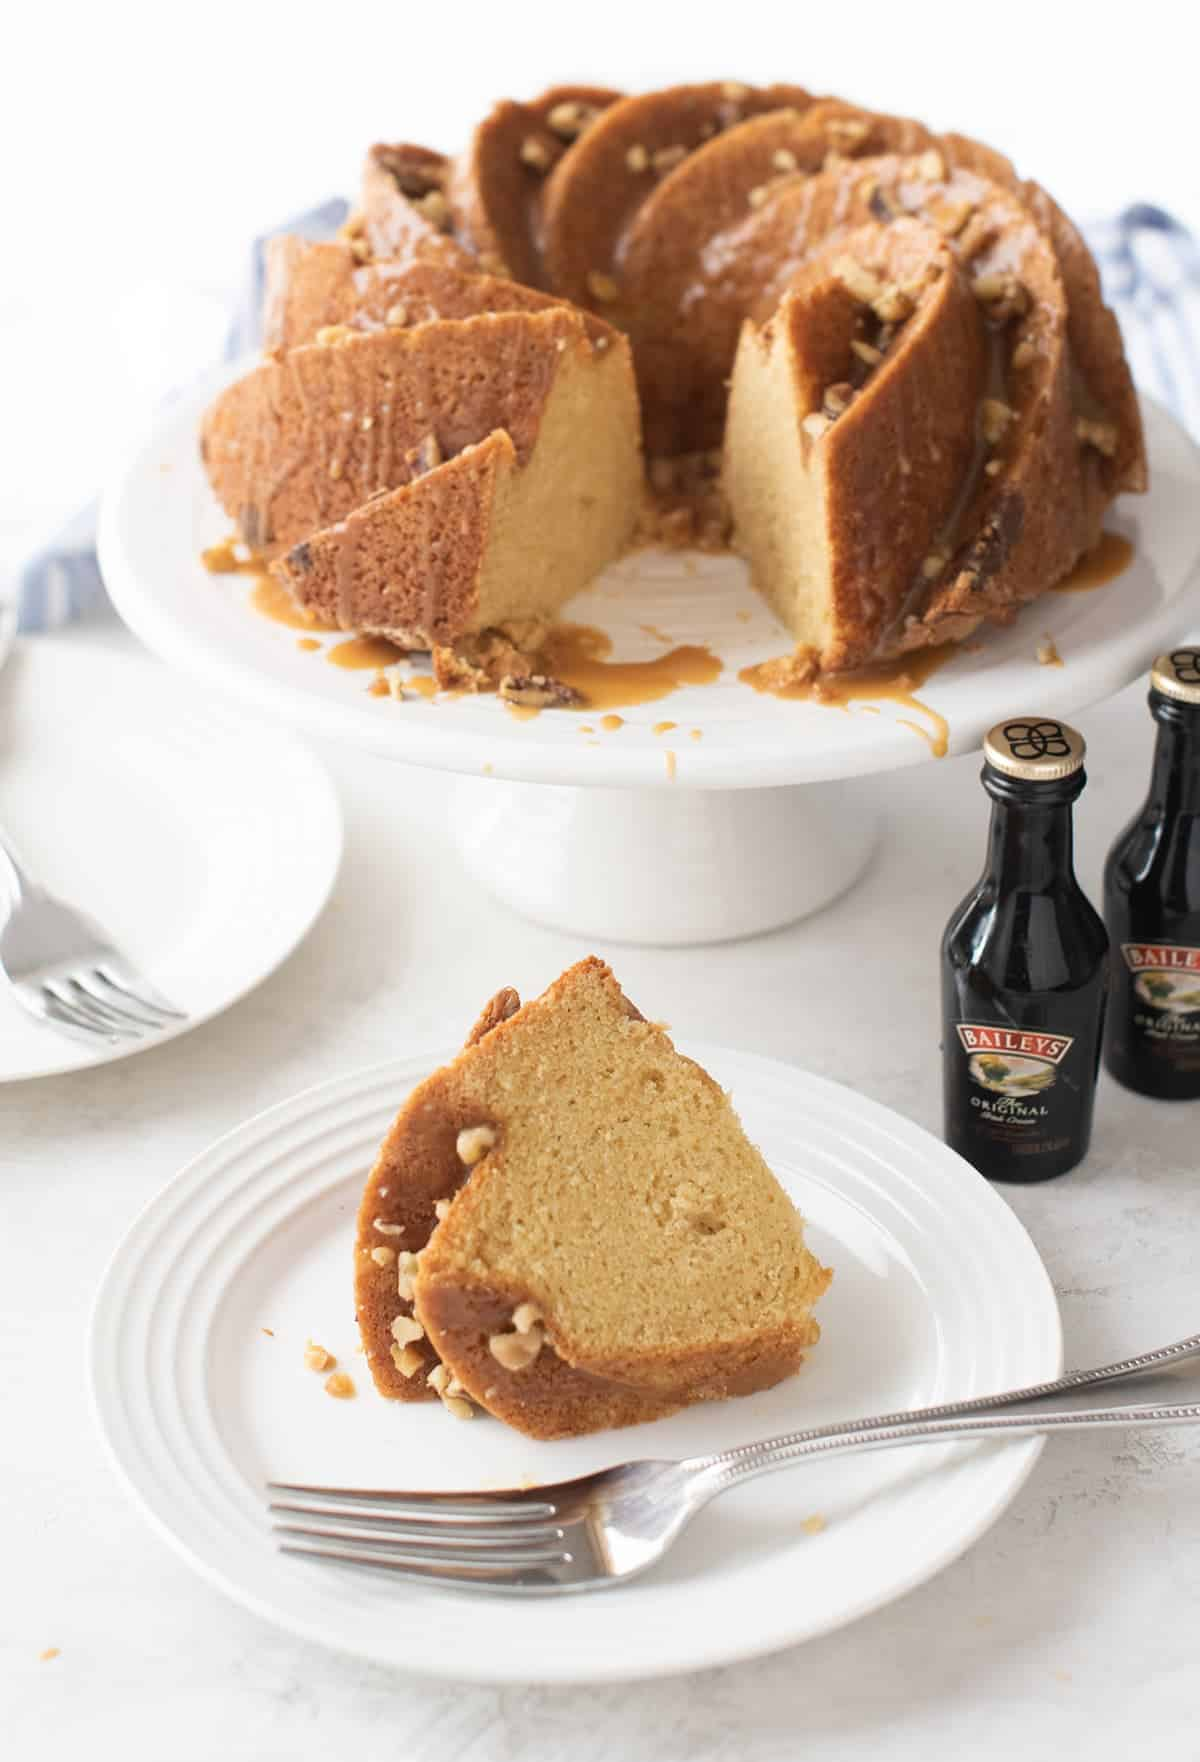 Bailey's Irish Creme Cake perched on white cake stand with one slice removed. Two white cake plates in forefront of photo, one holds silver fork, one hold slice of Bailey's cake. Two miniature bottles of Bailey's Irish Creme liquor next to cake stand.